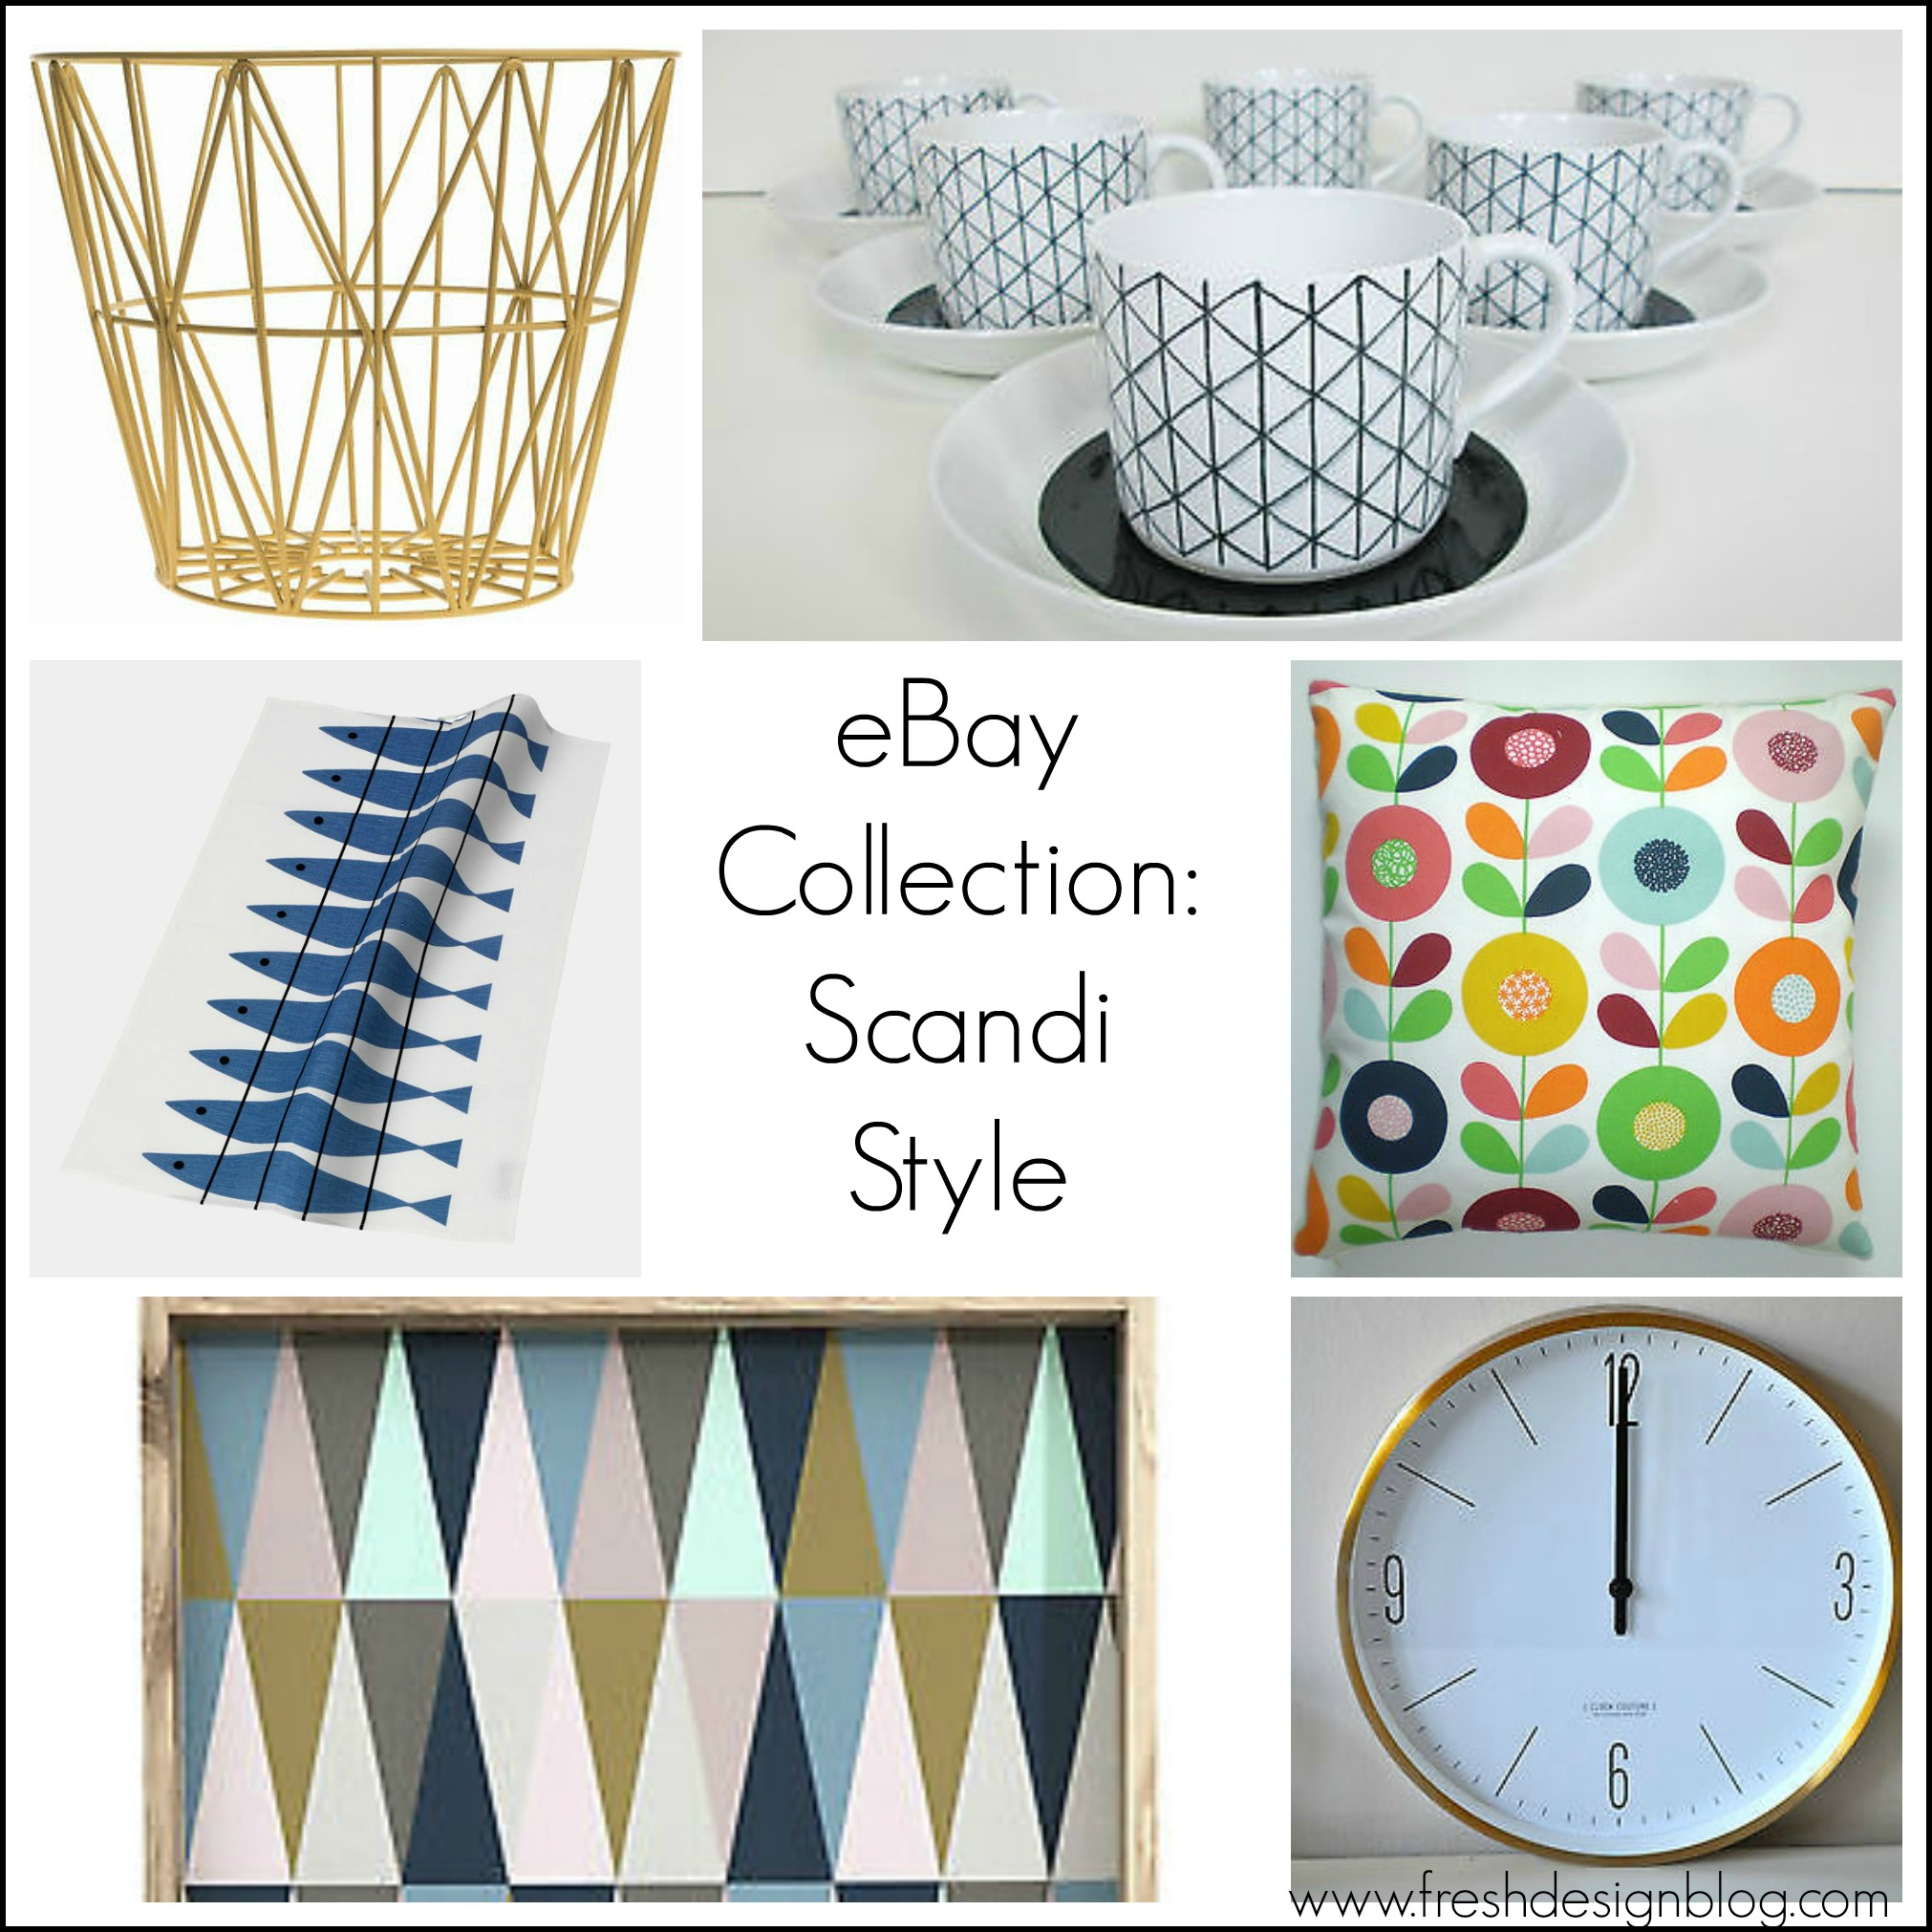 Http Www Freshdesignblog Com 2014 03 Curate Your Home Shopping Ideas With Ebay Uk Collections